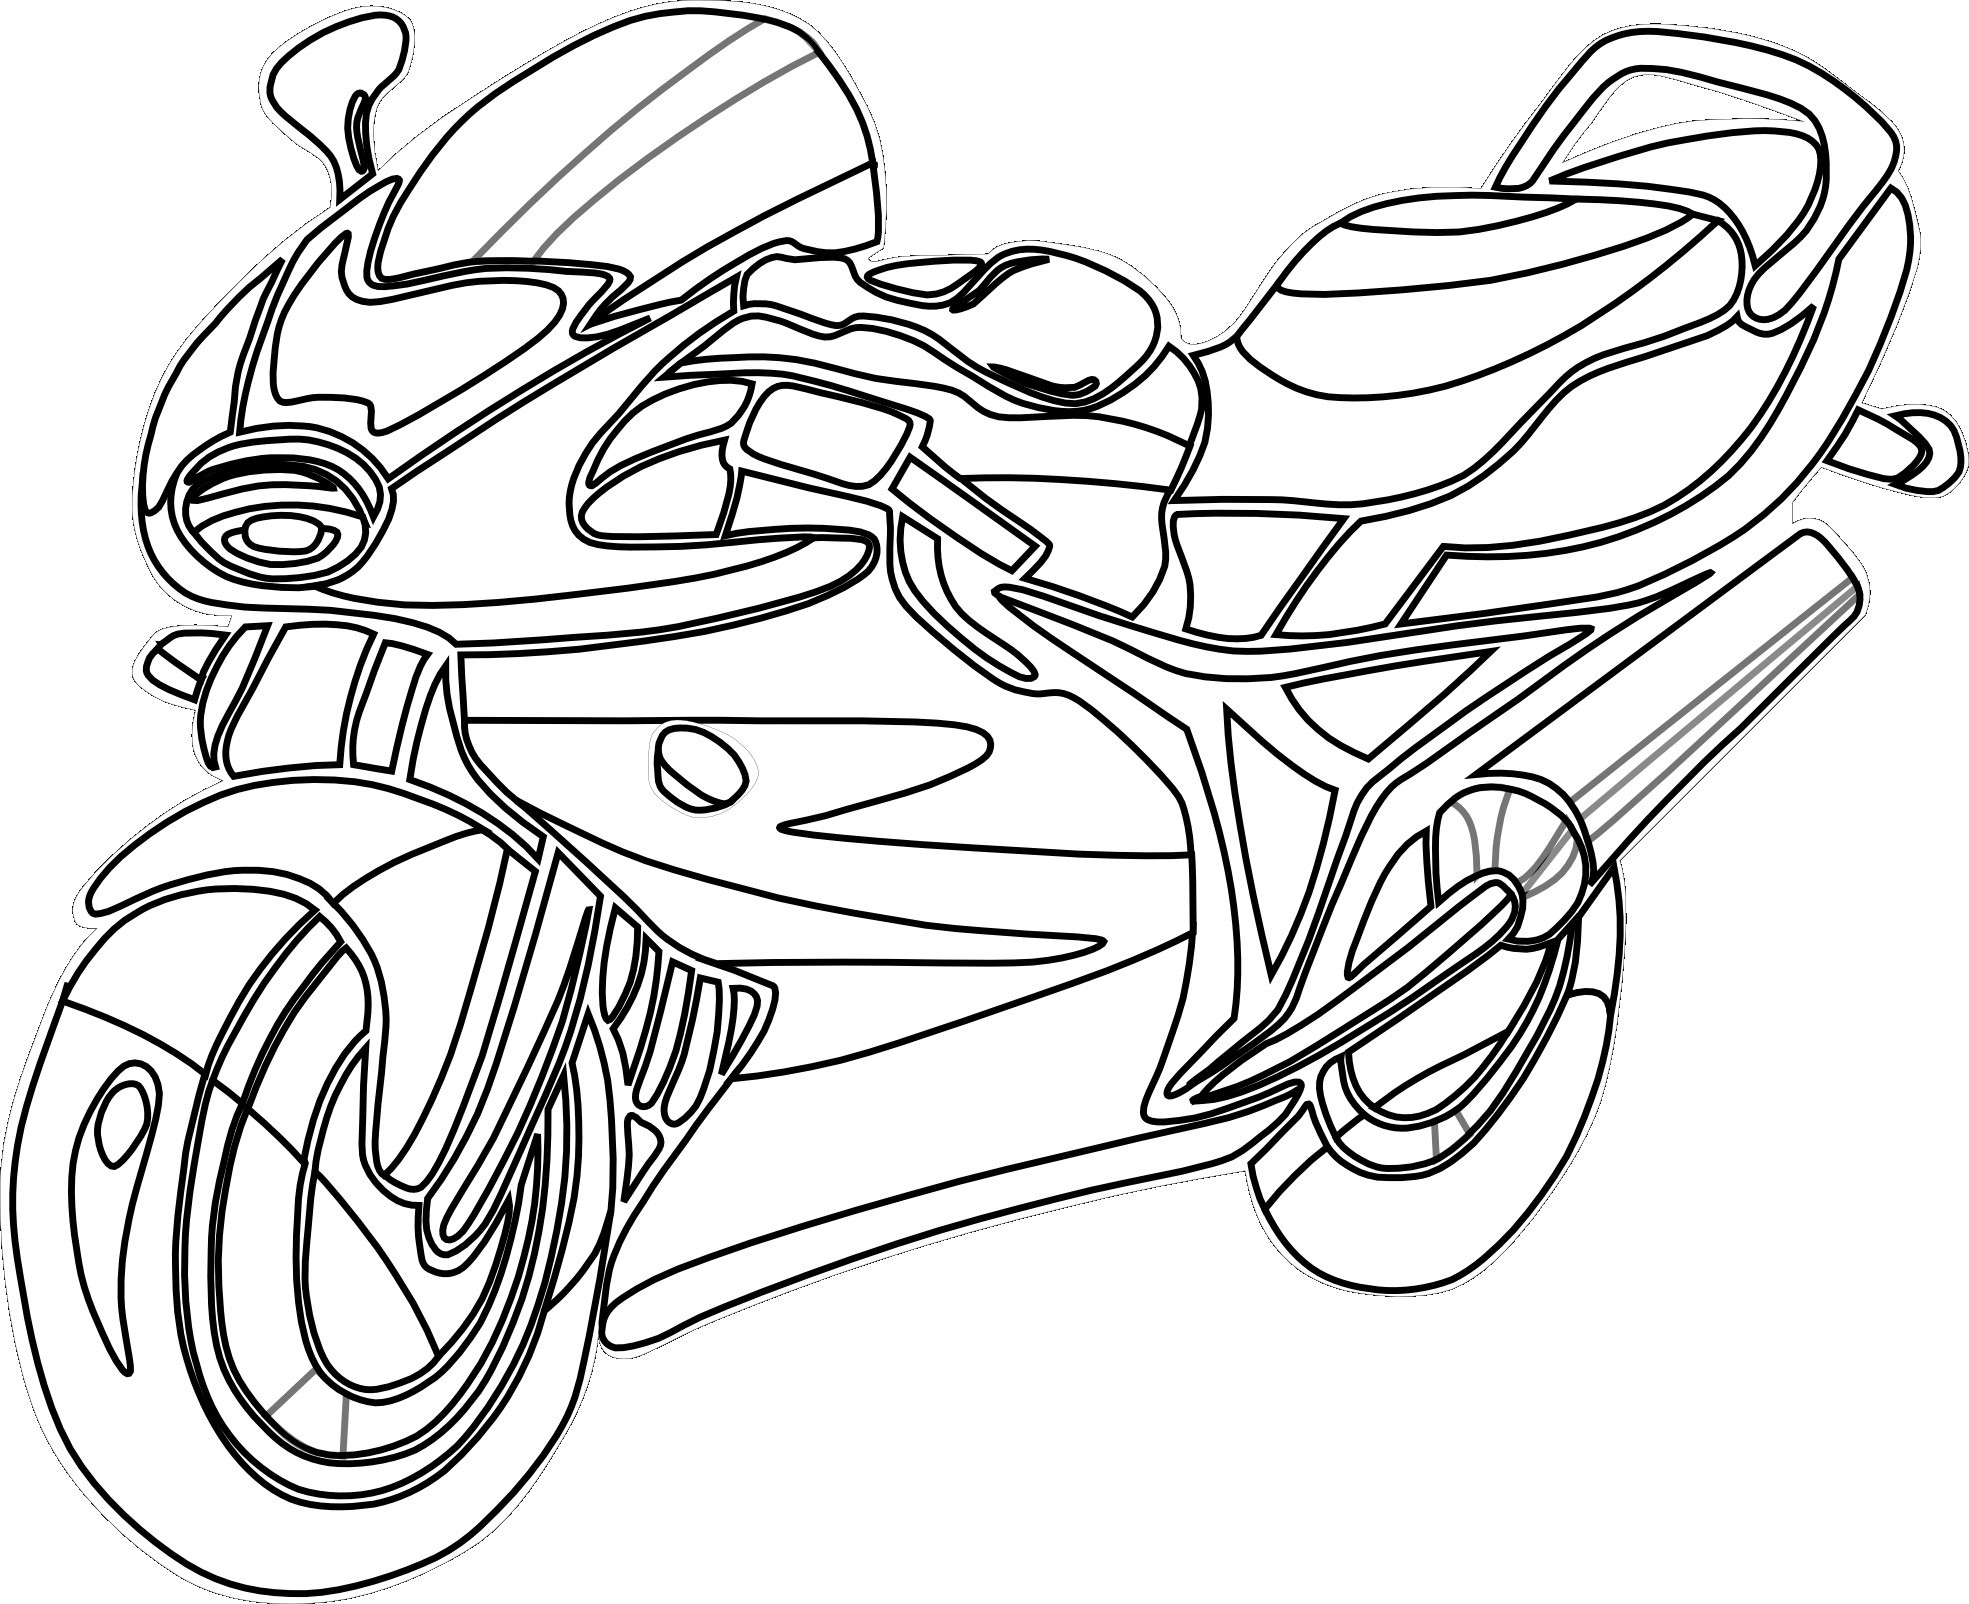 1969x1604 Cool Motorcycle Coloring Pages Best Of Great